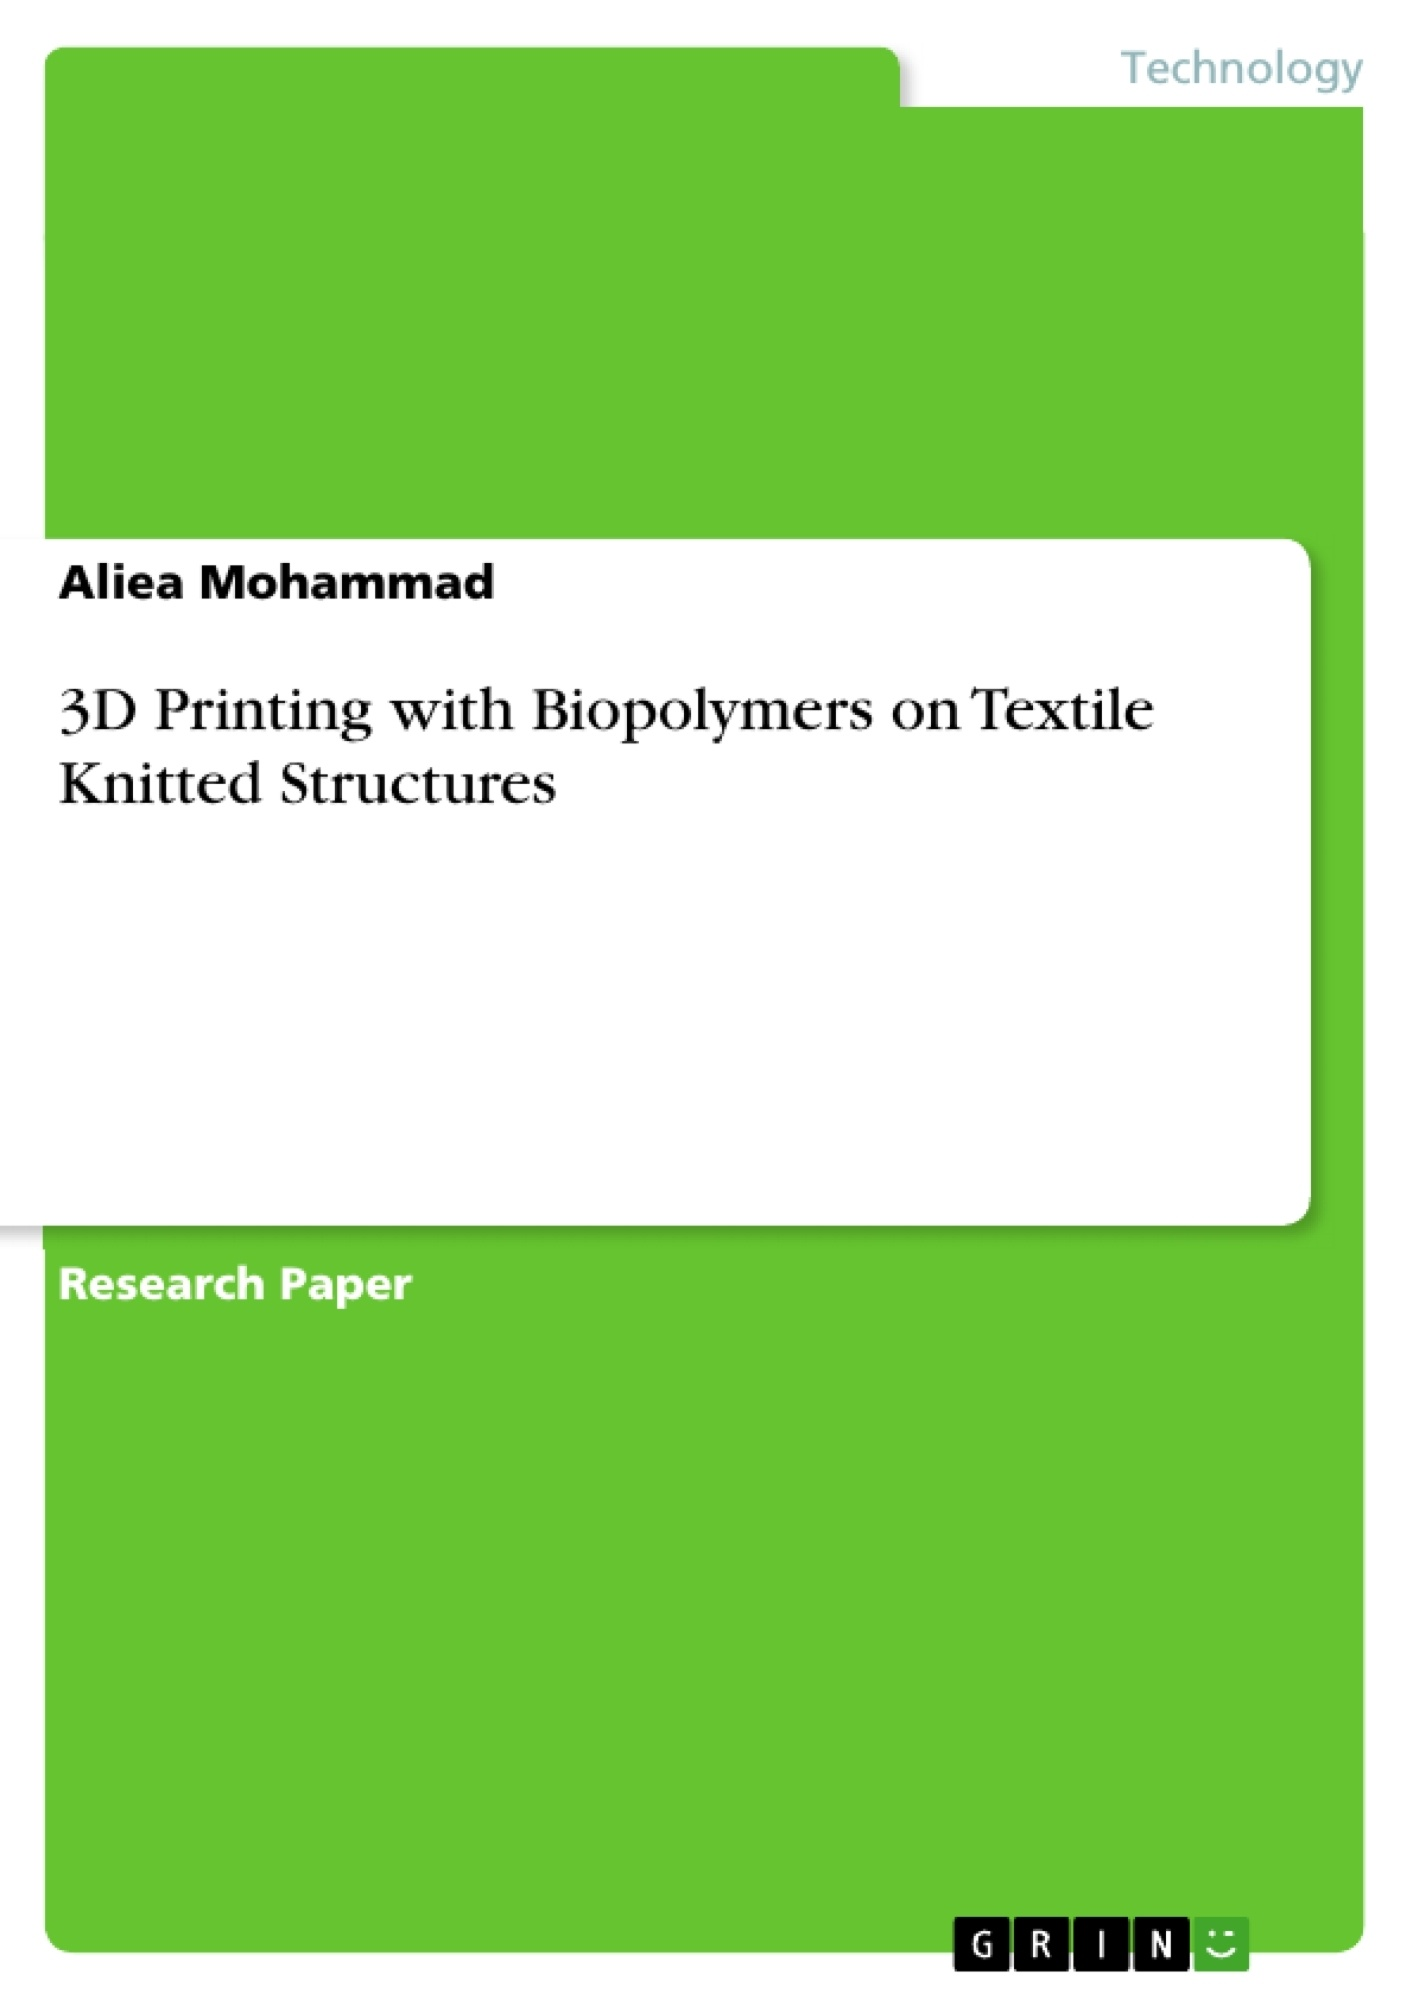 Title: 3D Printing with Biopolymers on Textile Knitted Structures